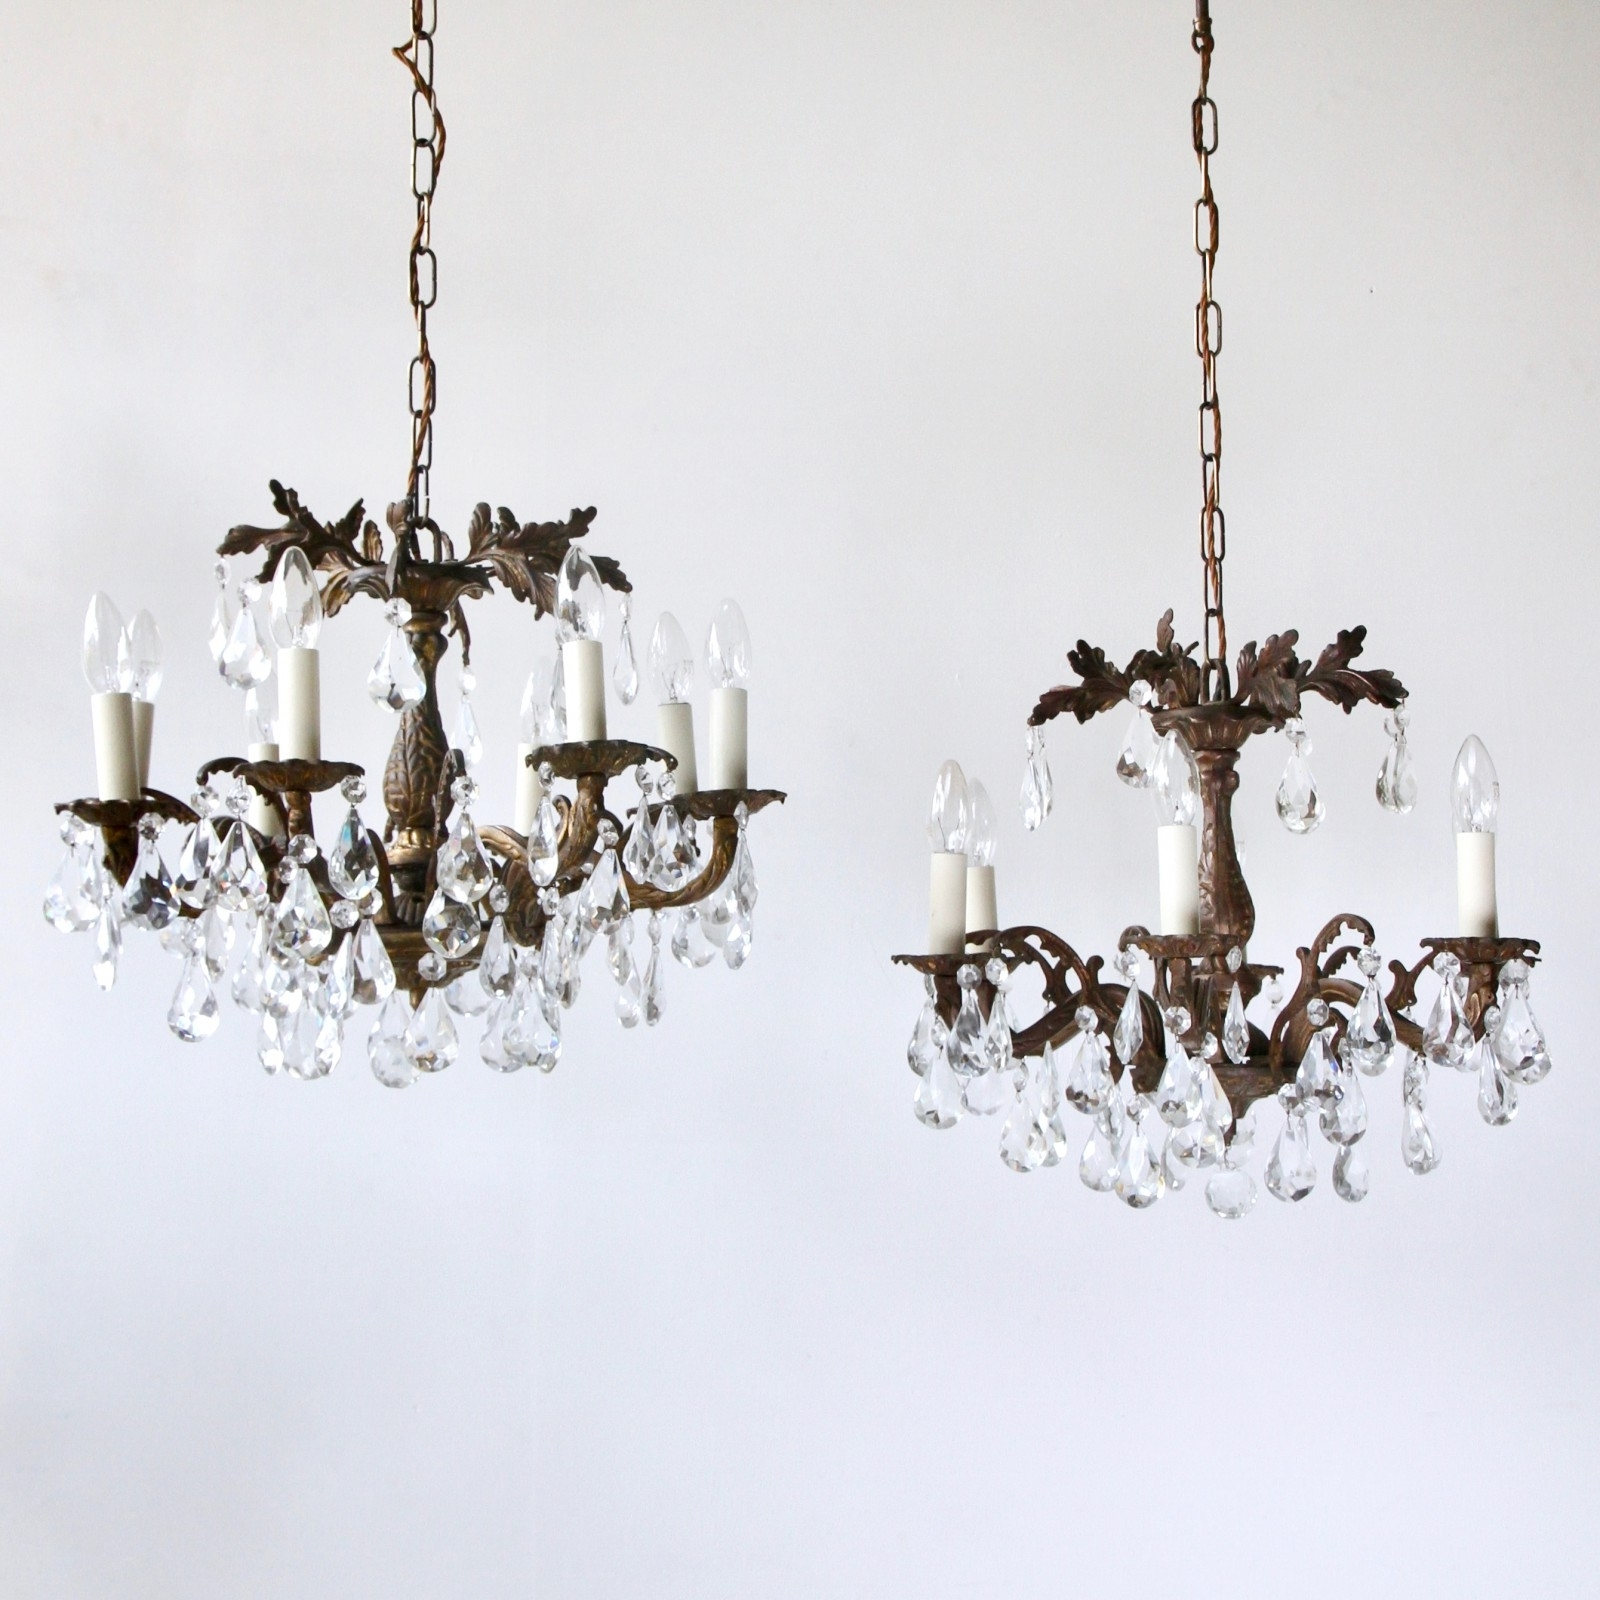 Newest Ornate Chandeliers With Regard To Ornate Brass Chandeliers Dressed In Cut Crystal Pear Drops (View 9 of 20)